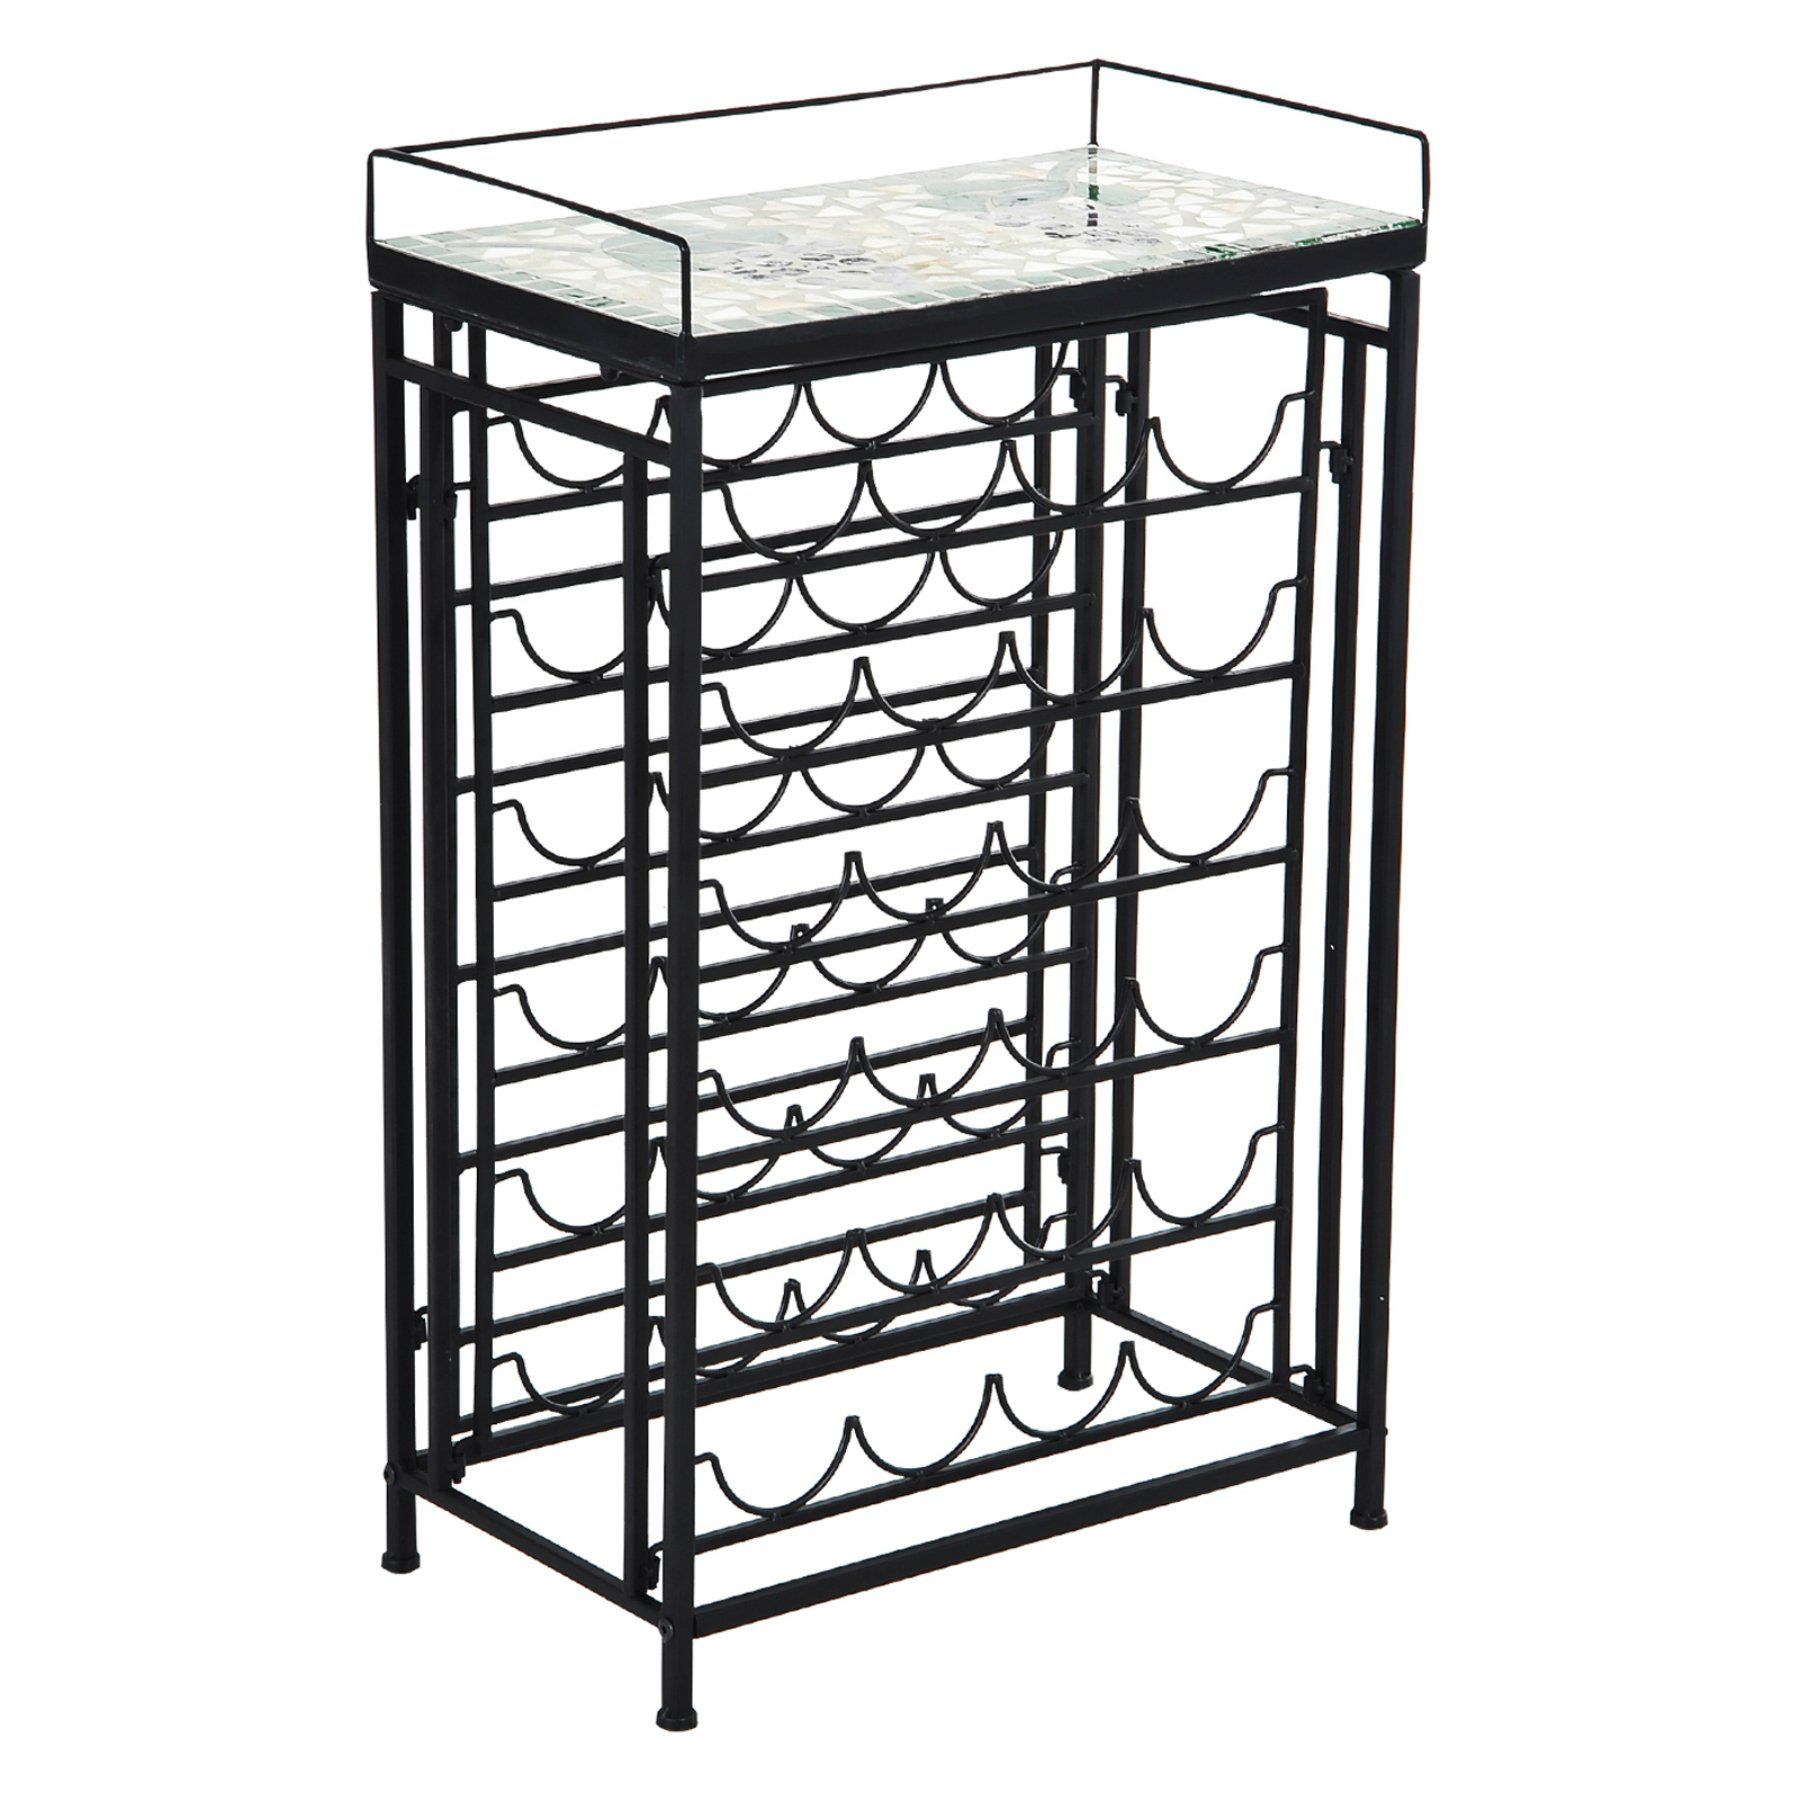 25 Bottle Metal Wine Rack Table  801 011